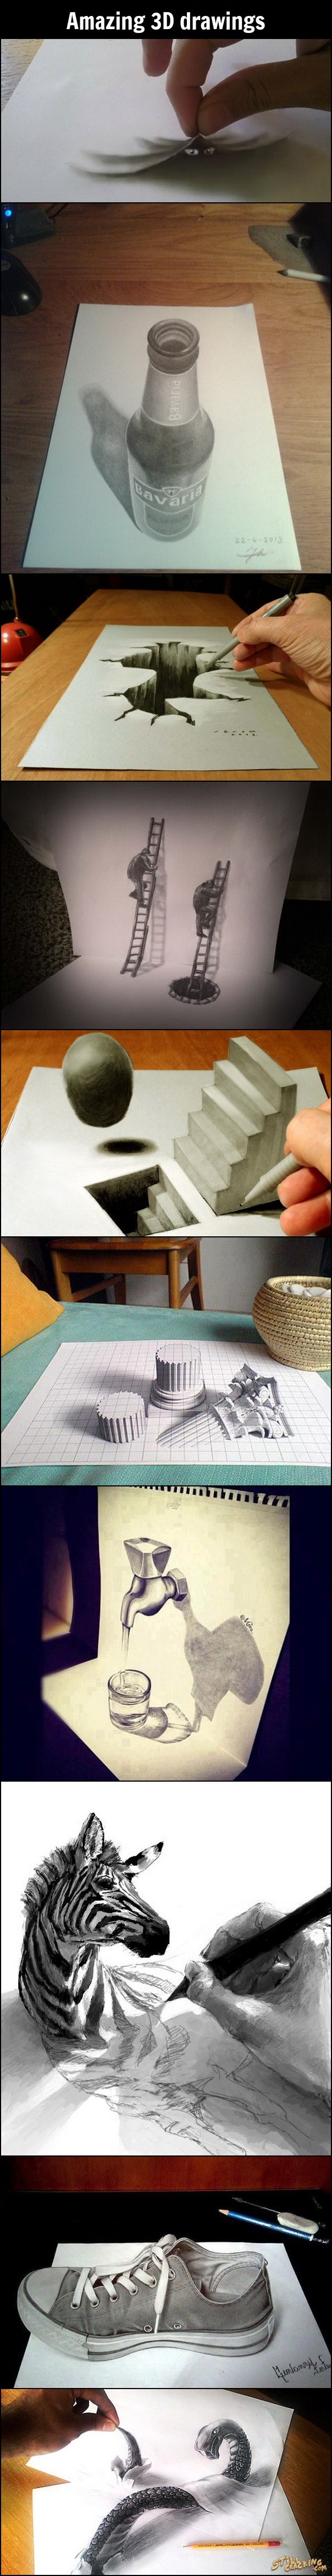 art, 3d drawings, amazing drawings